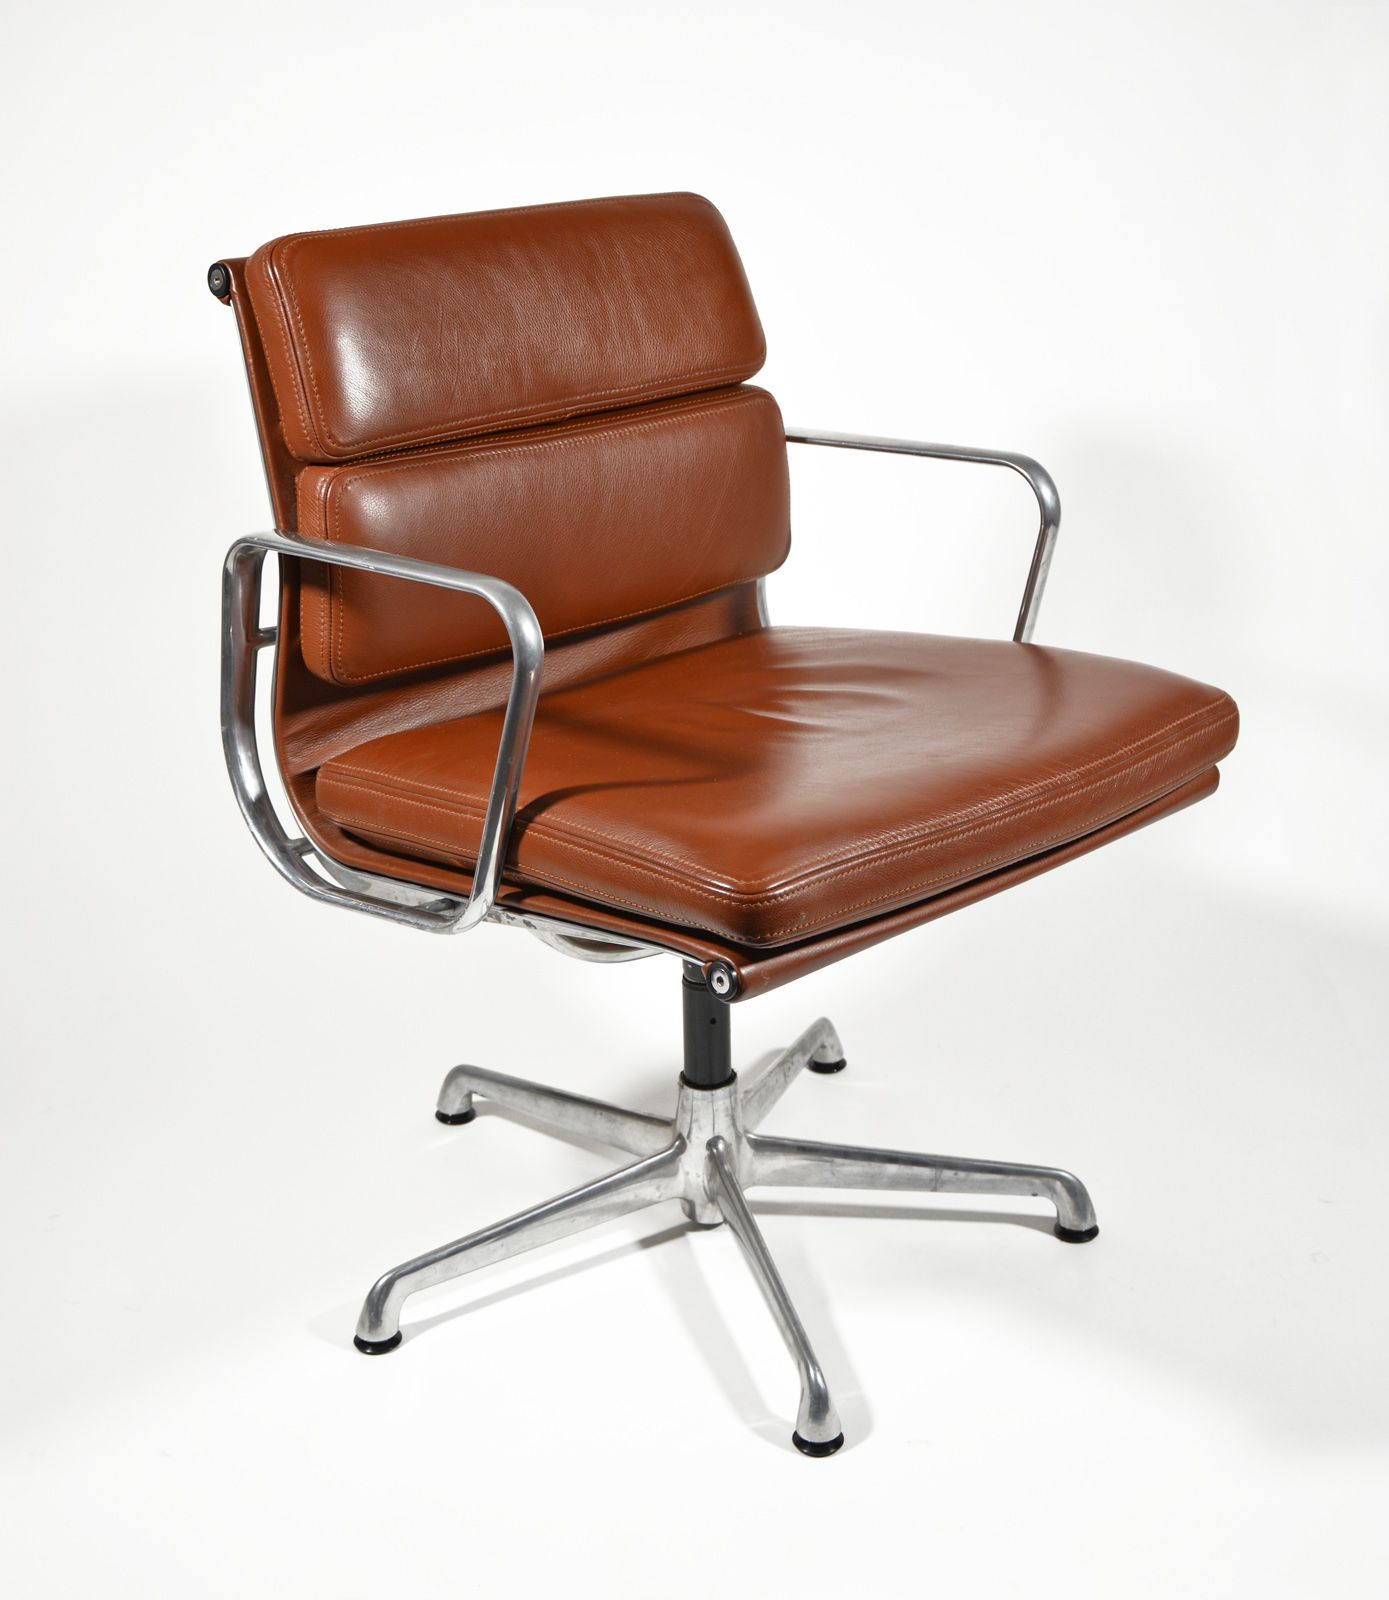 Charles and Ray Eames Soft Pad Chair Chairs. Sillas